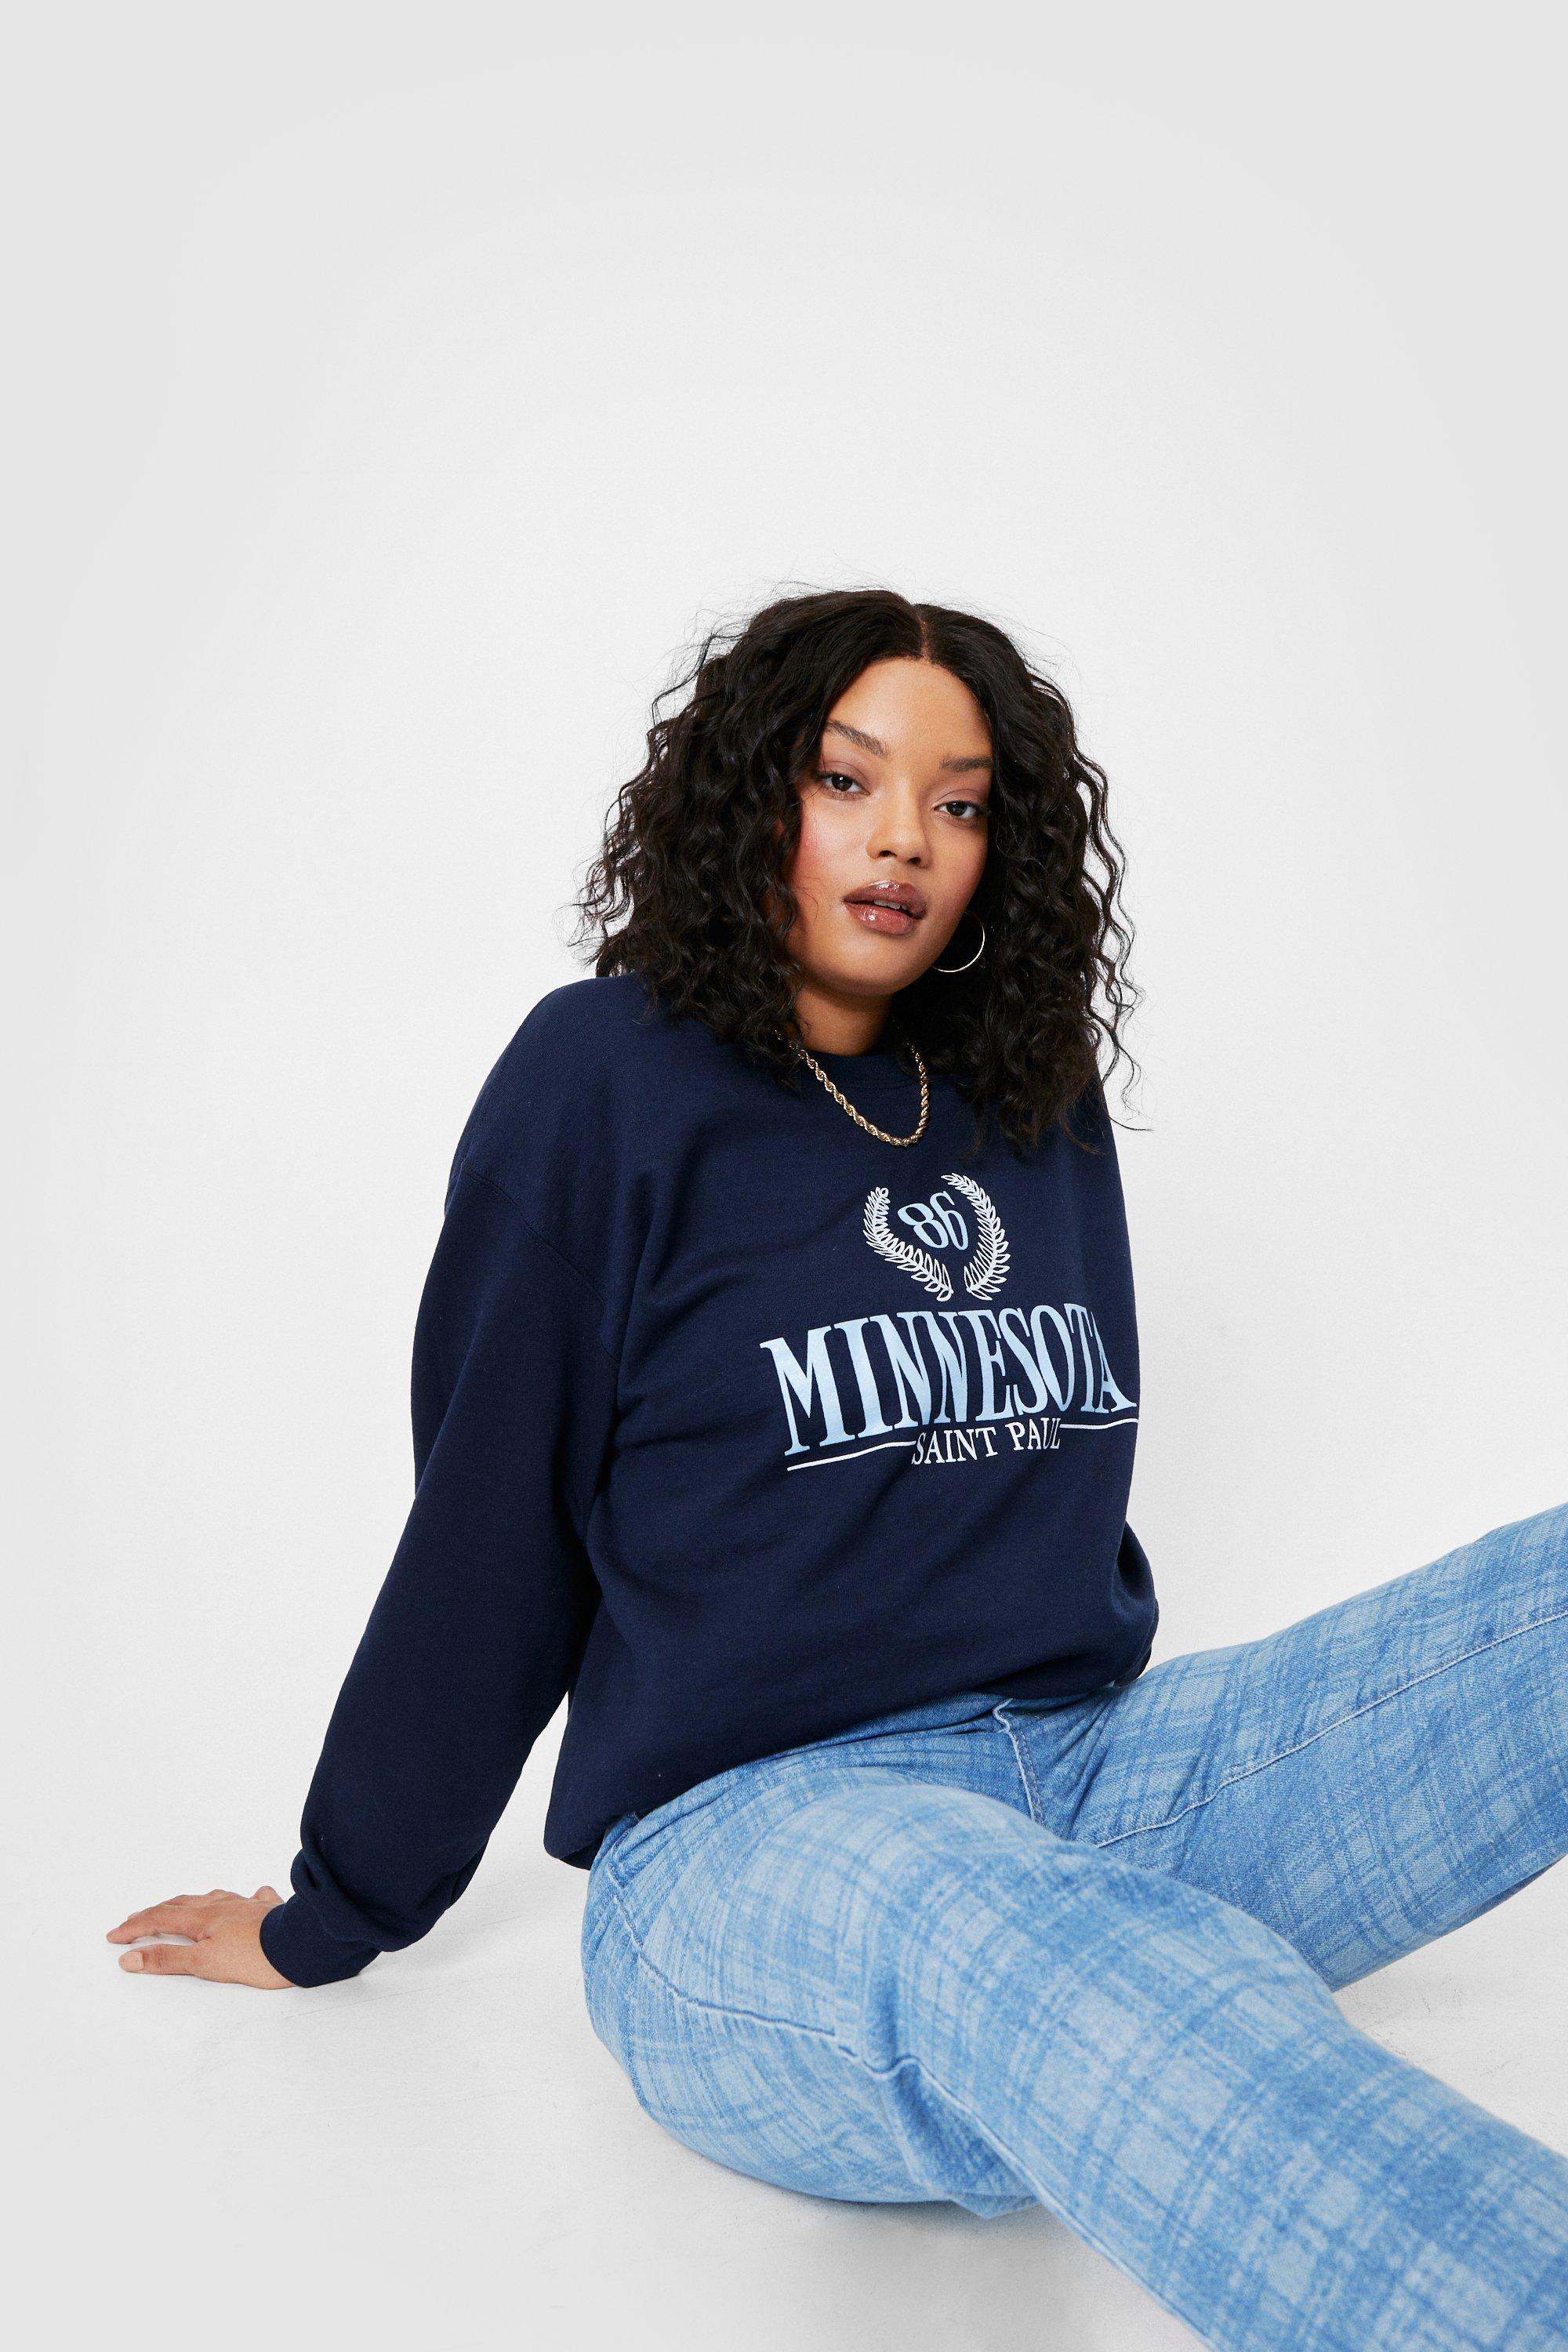 Plus Size Minnesota Slogan Sweat 18